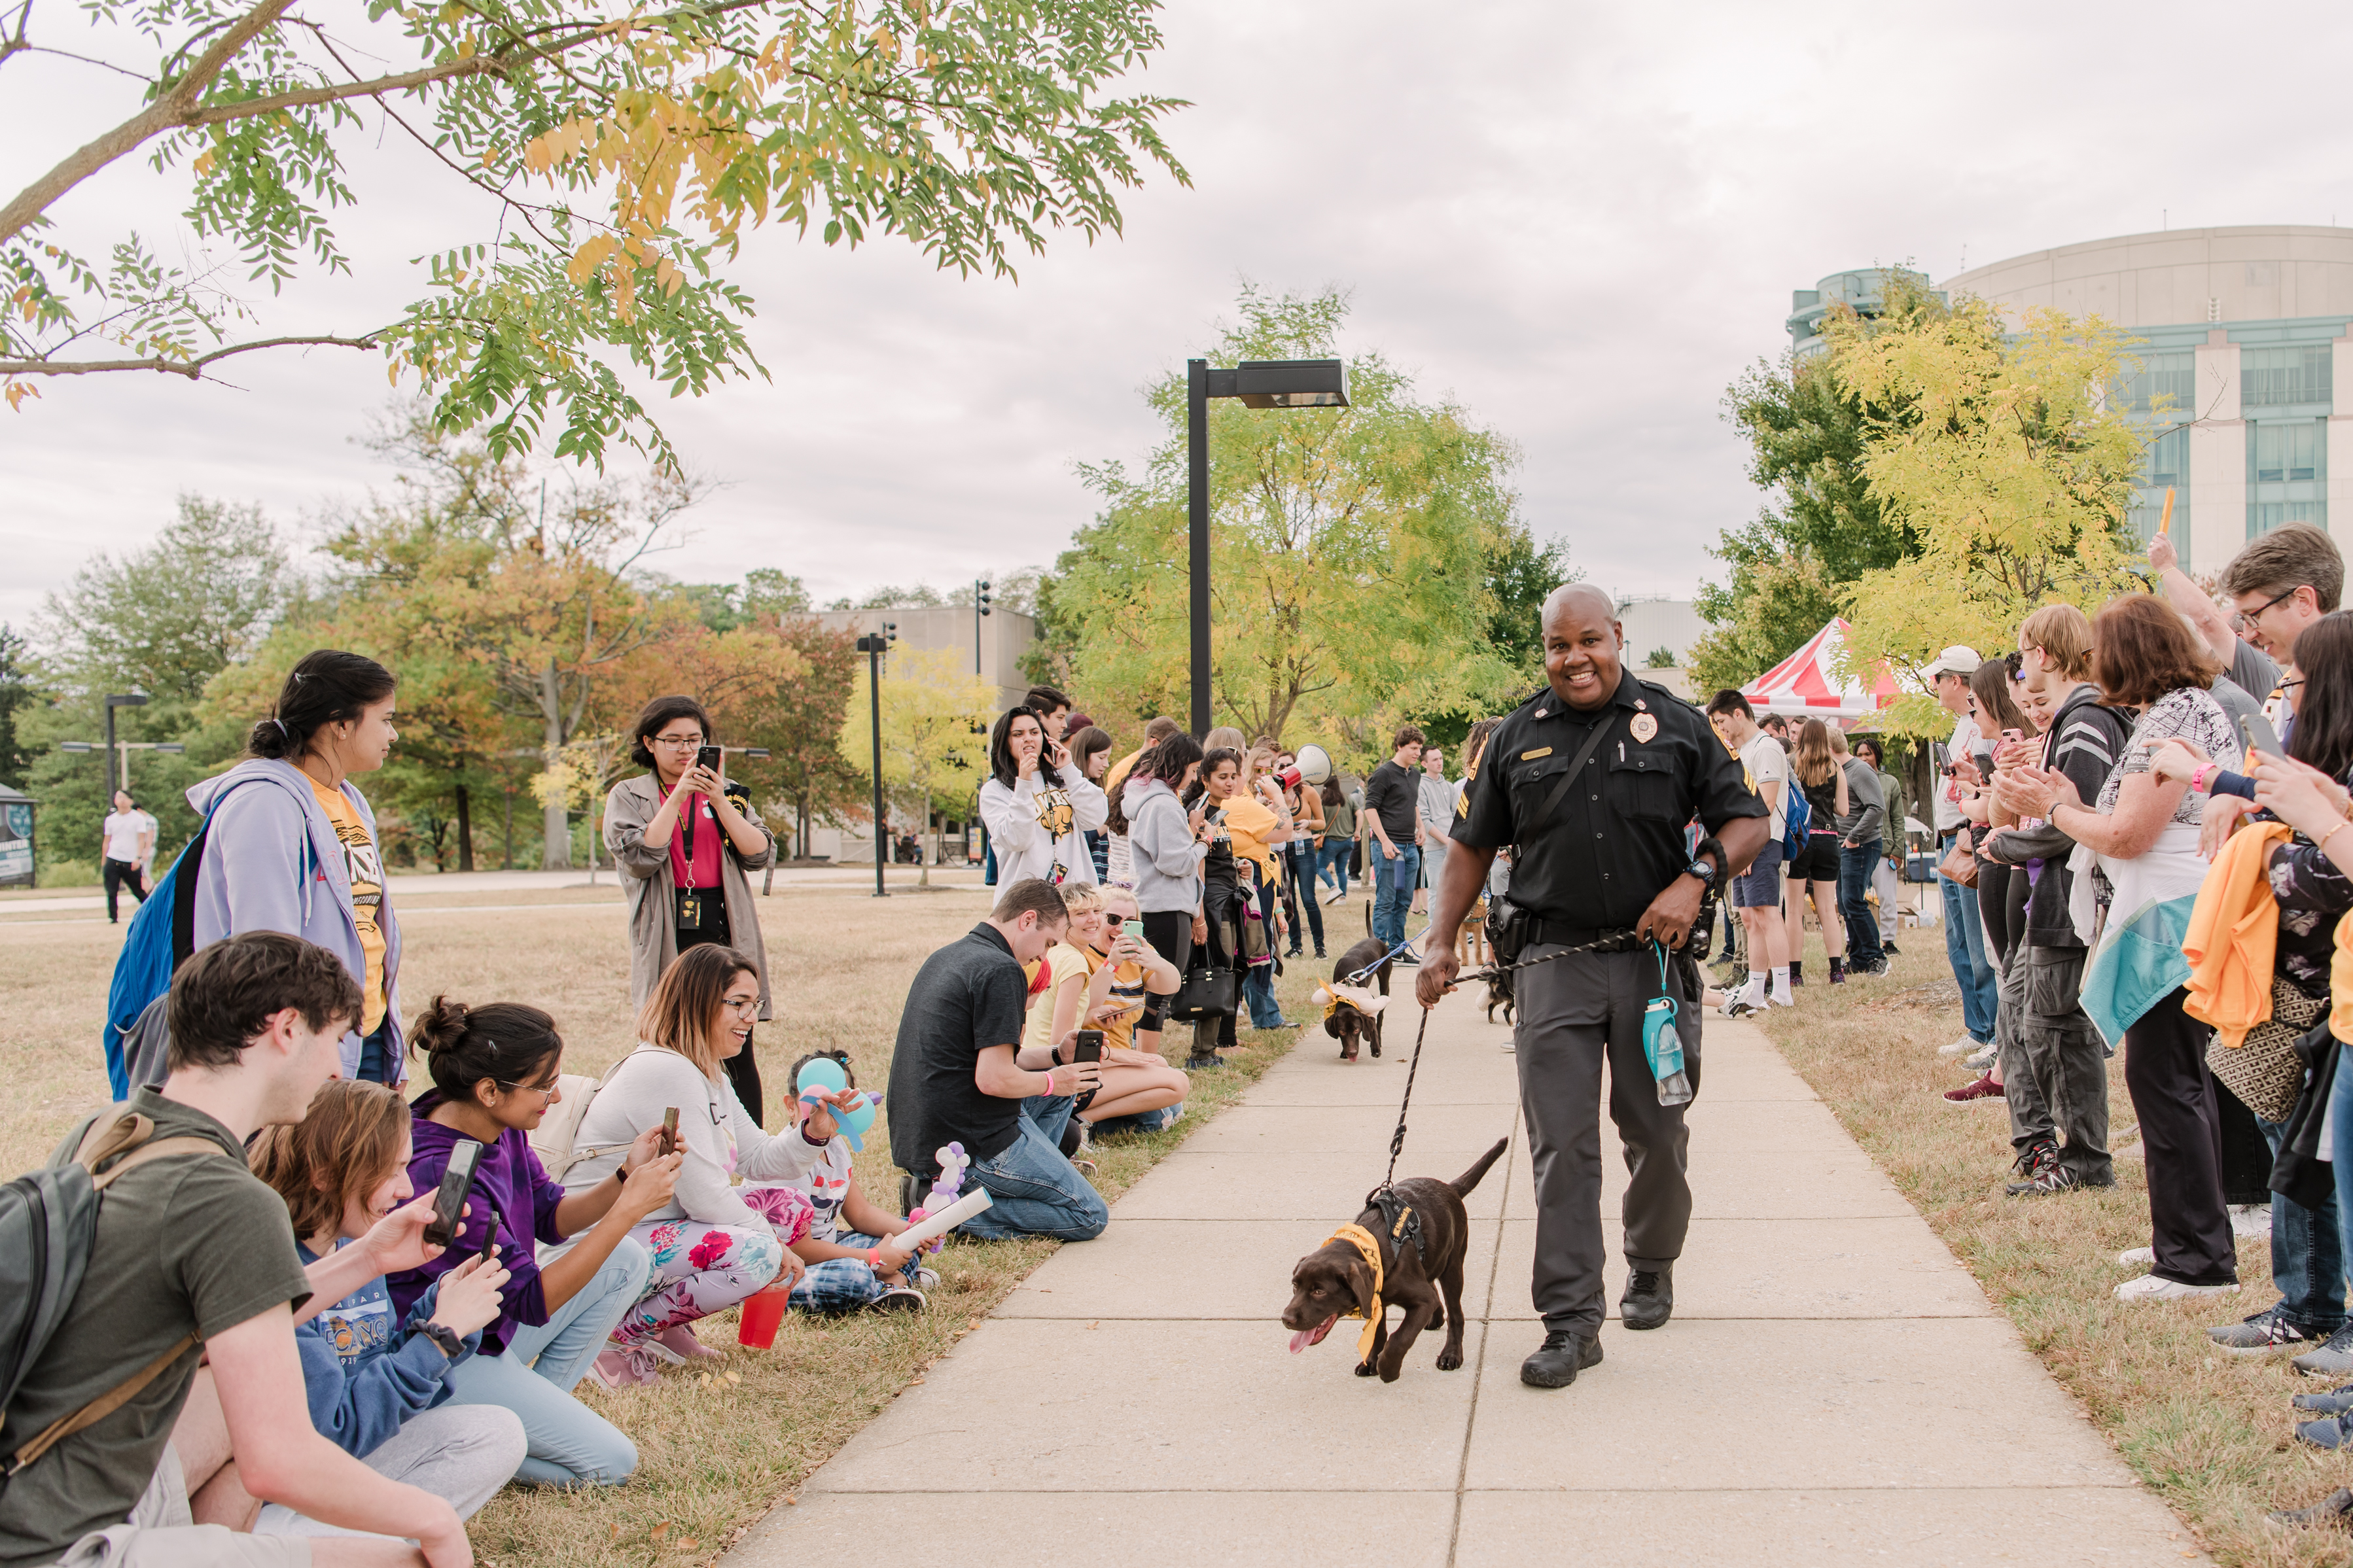 Officer Cheatum and Chip at puppy parade